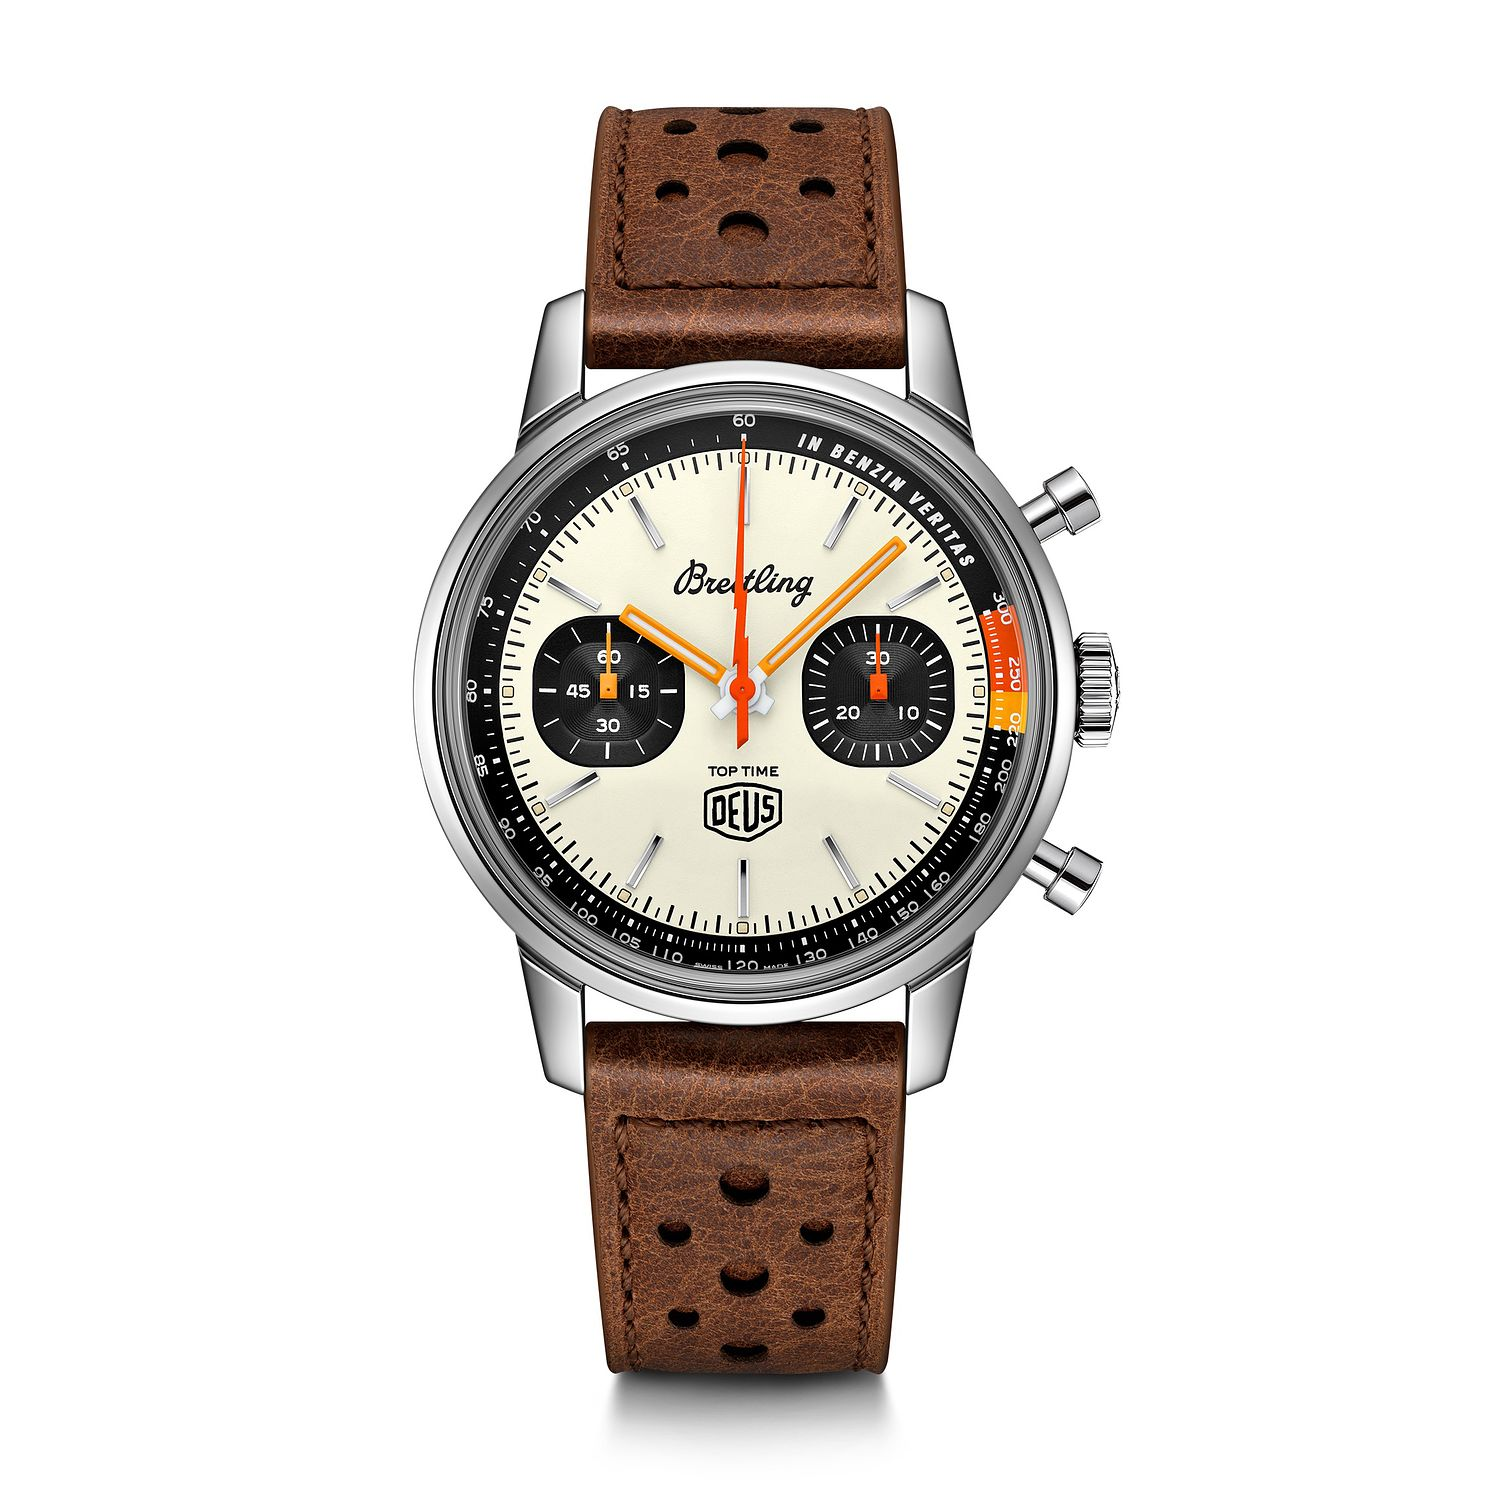 Breitling Premier Top Time Deus Limited Edition Watch - Product number 1281151